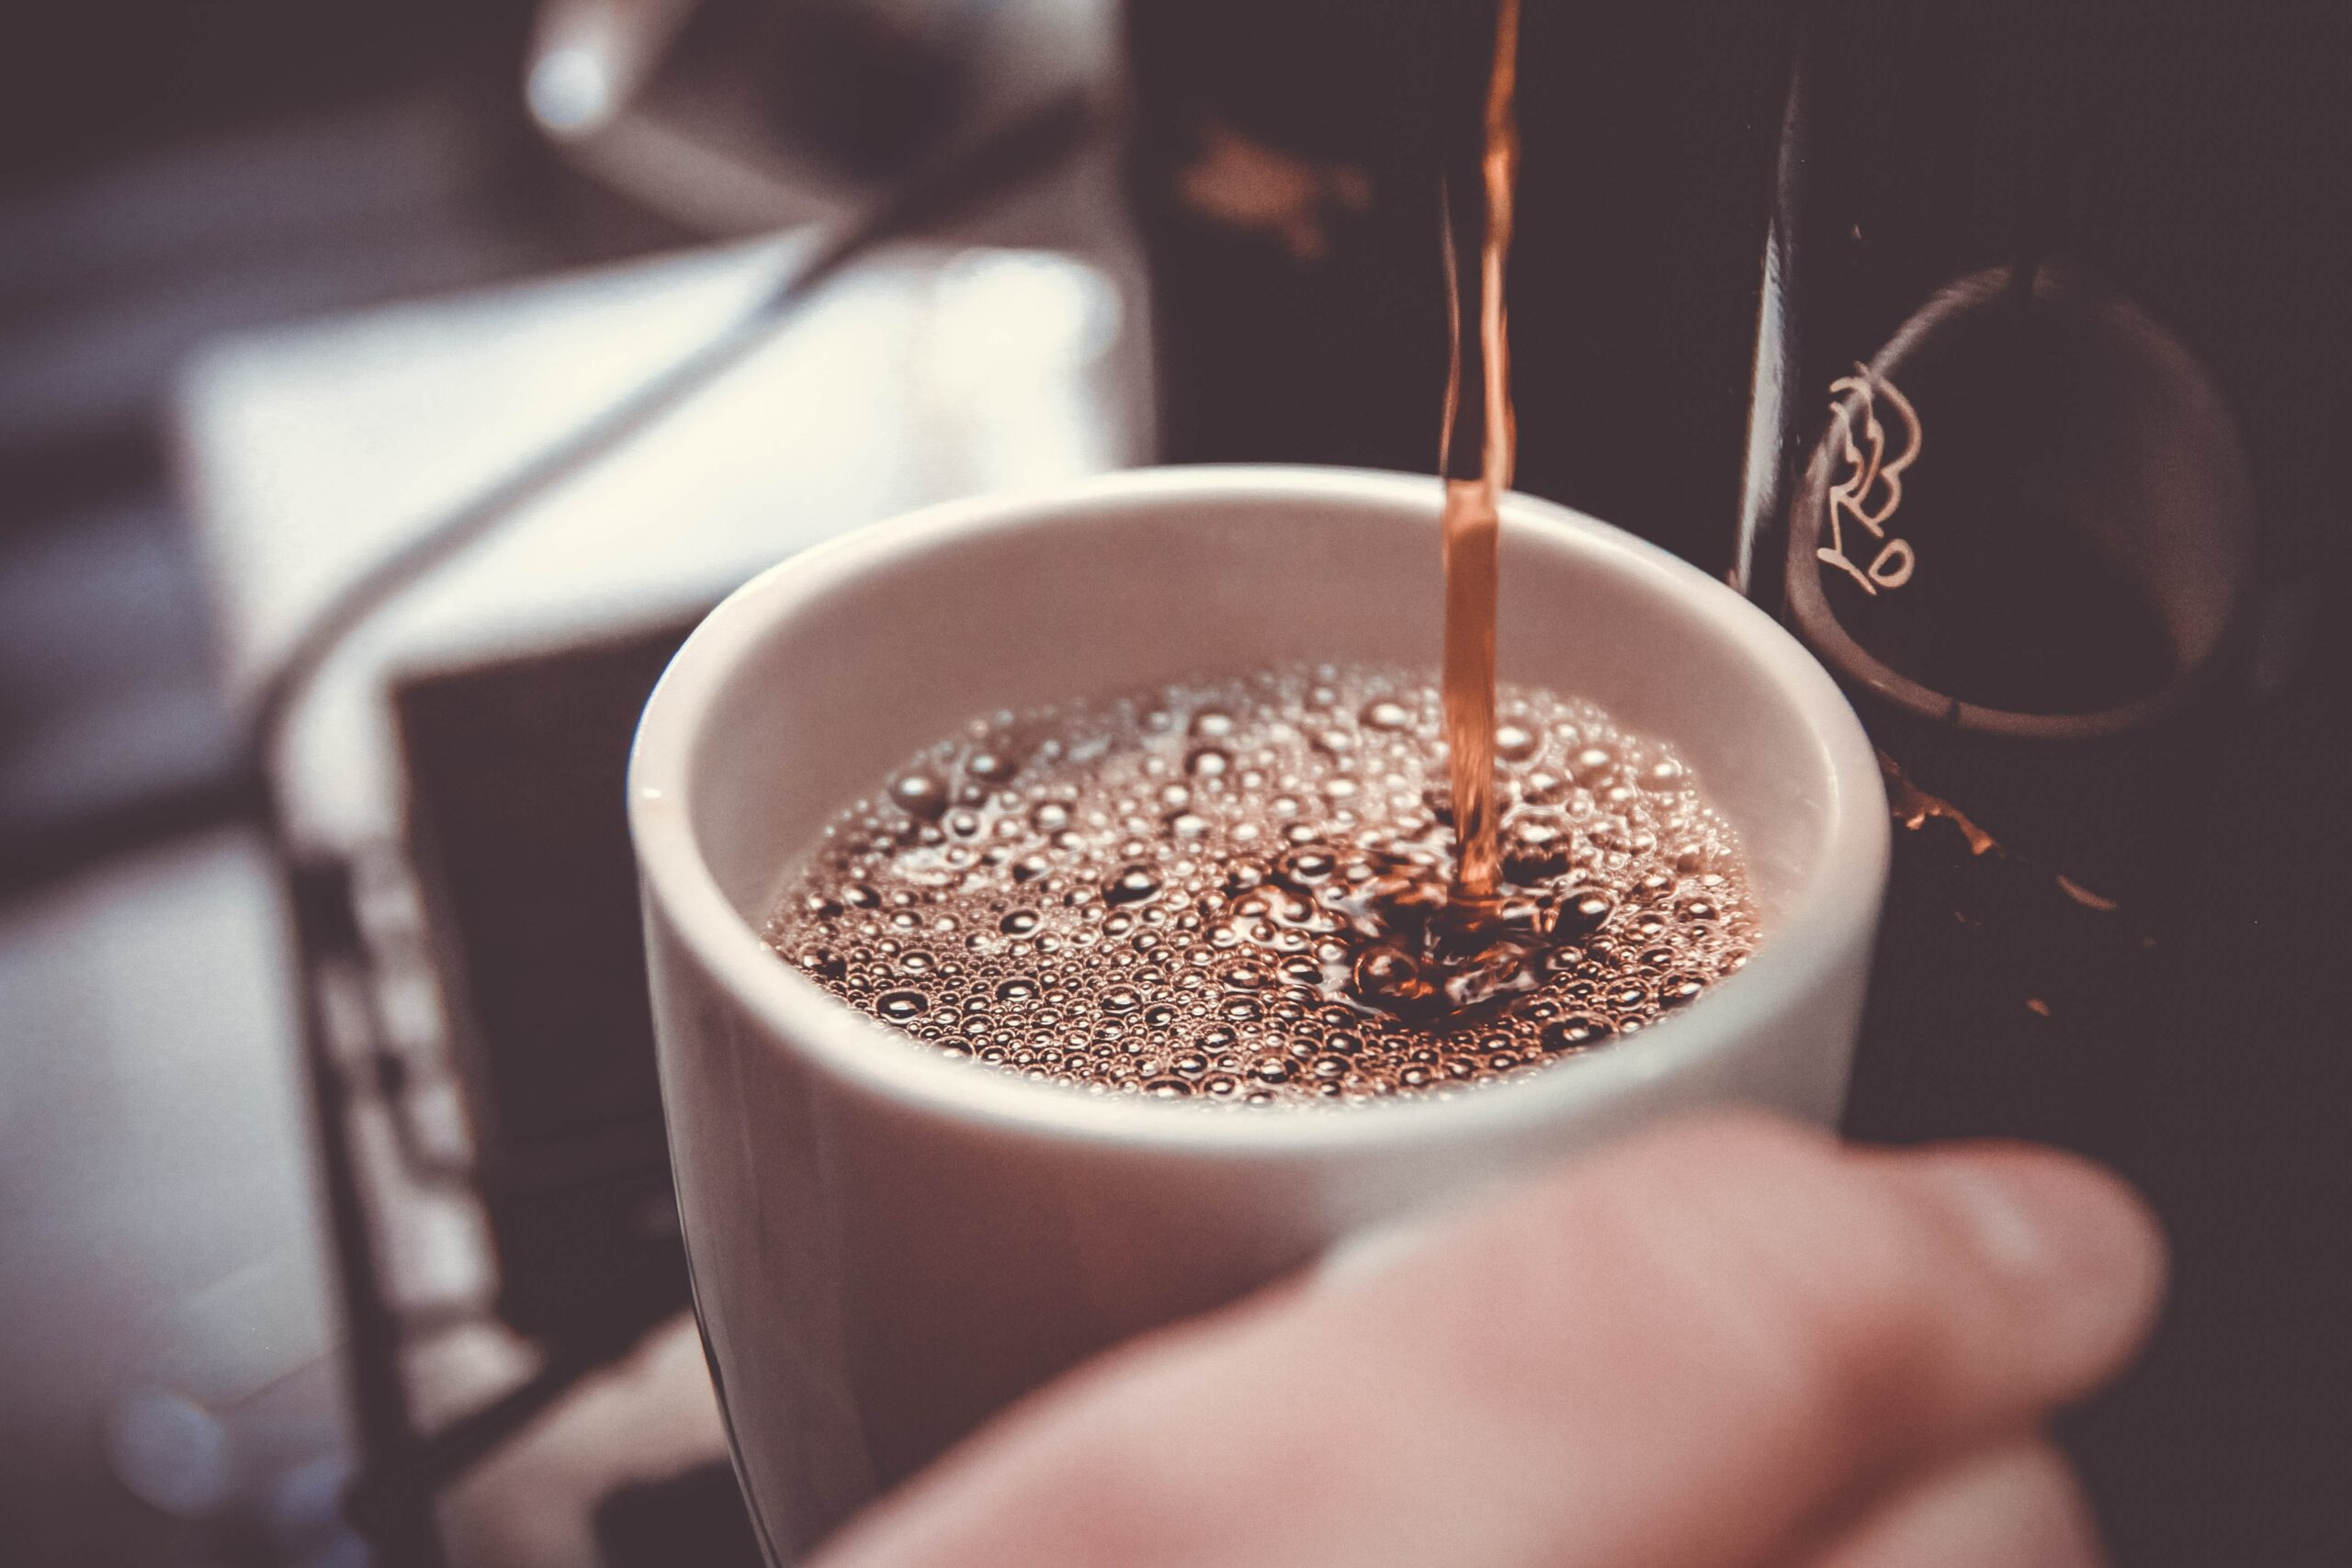 Freshly brewed coffee being poured